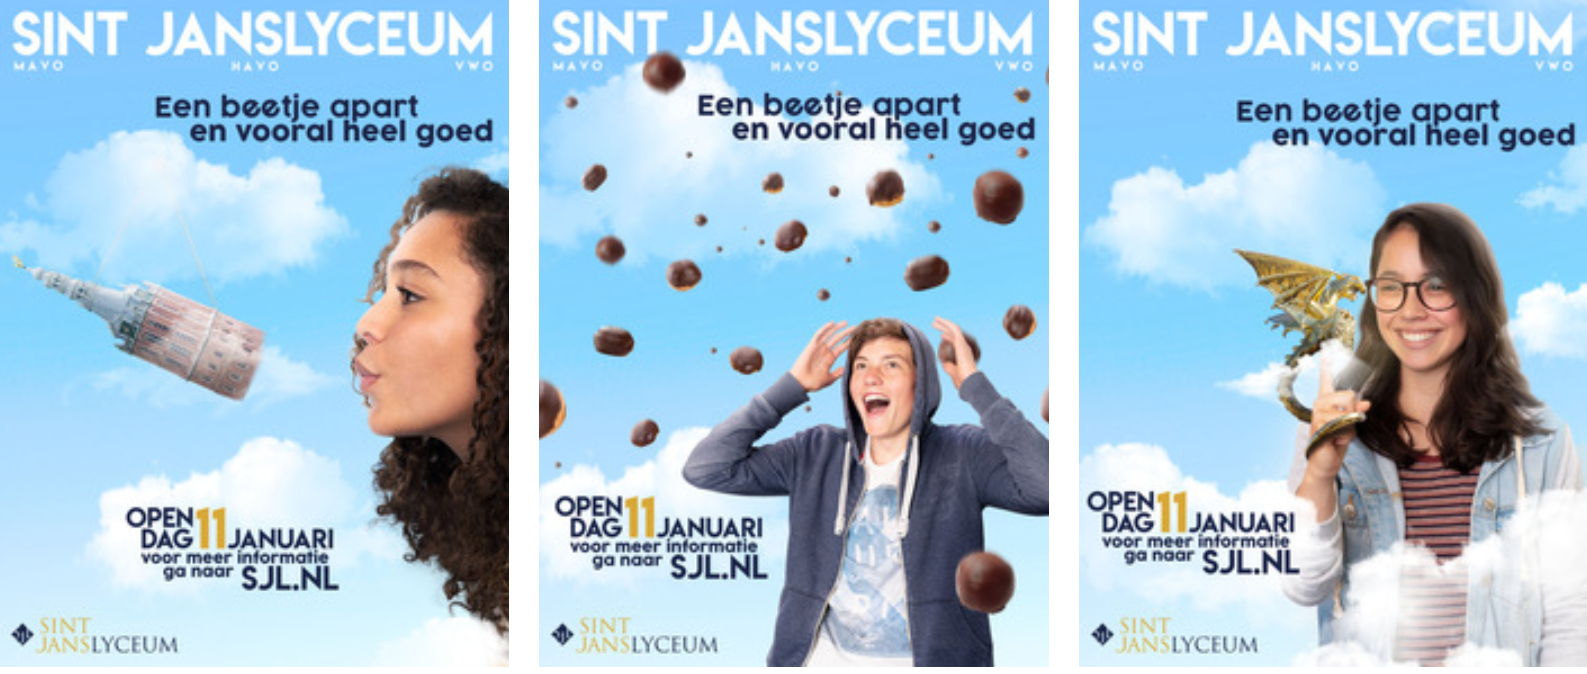 Open Dag Event Sint-Janslyceum